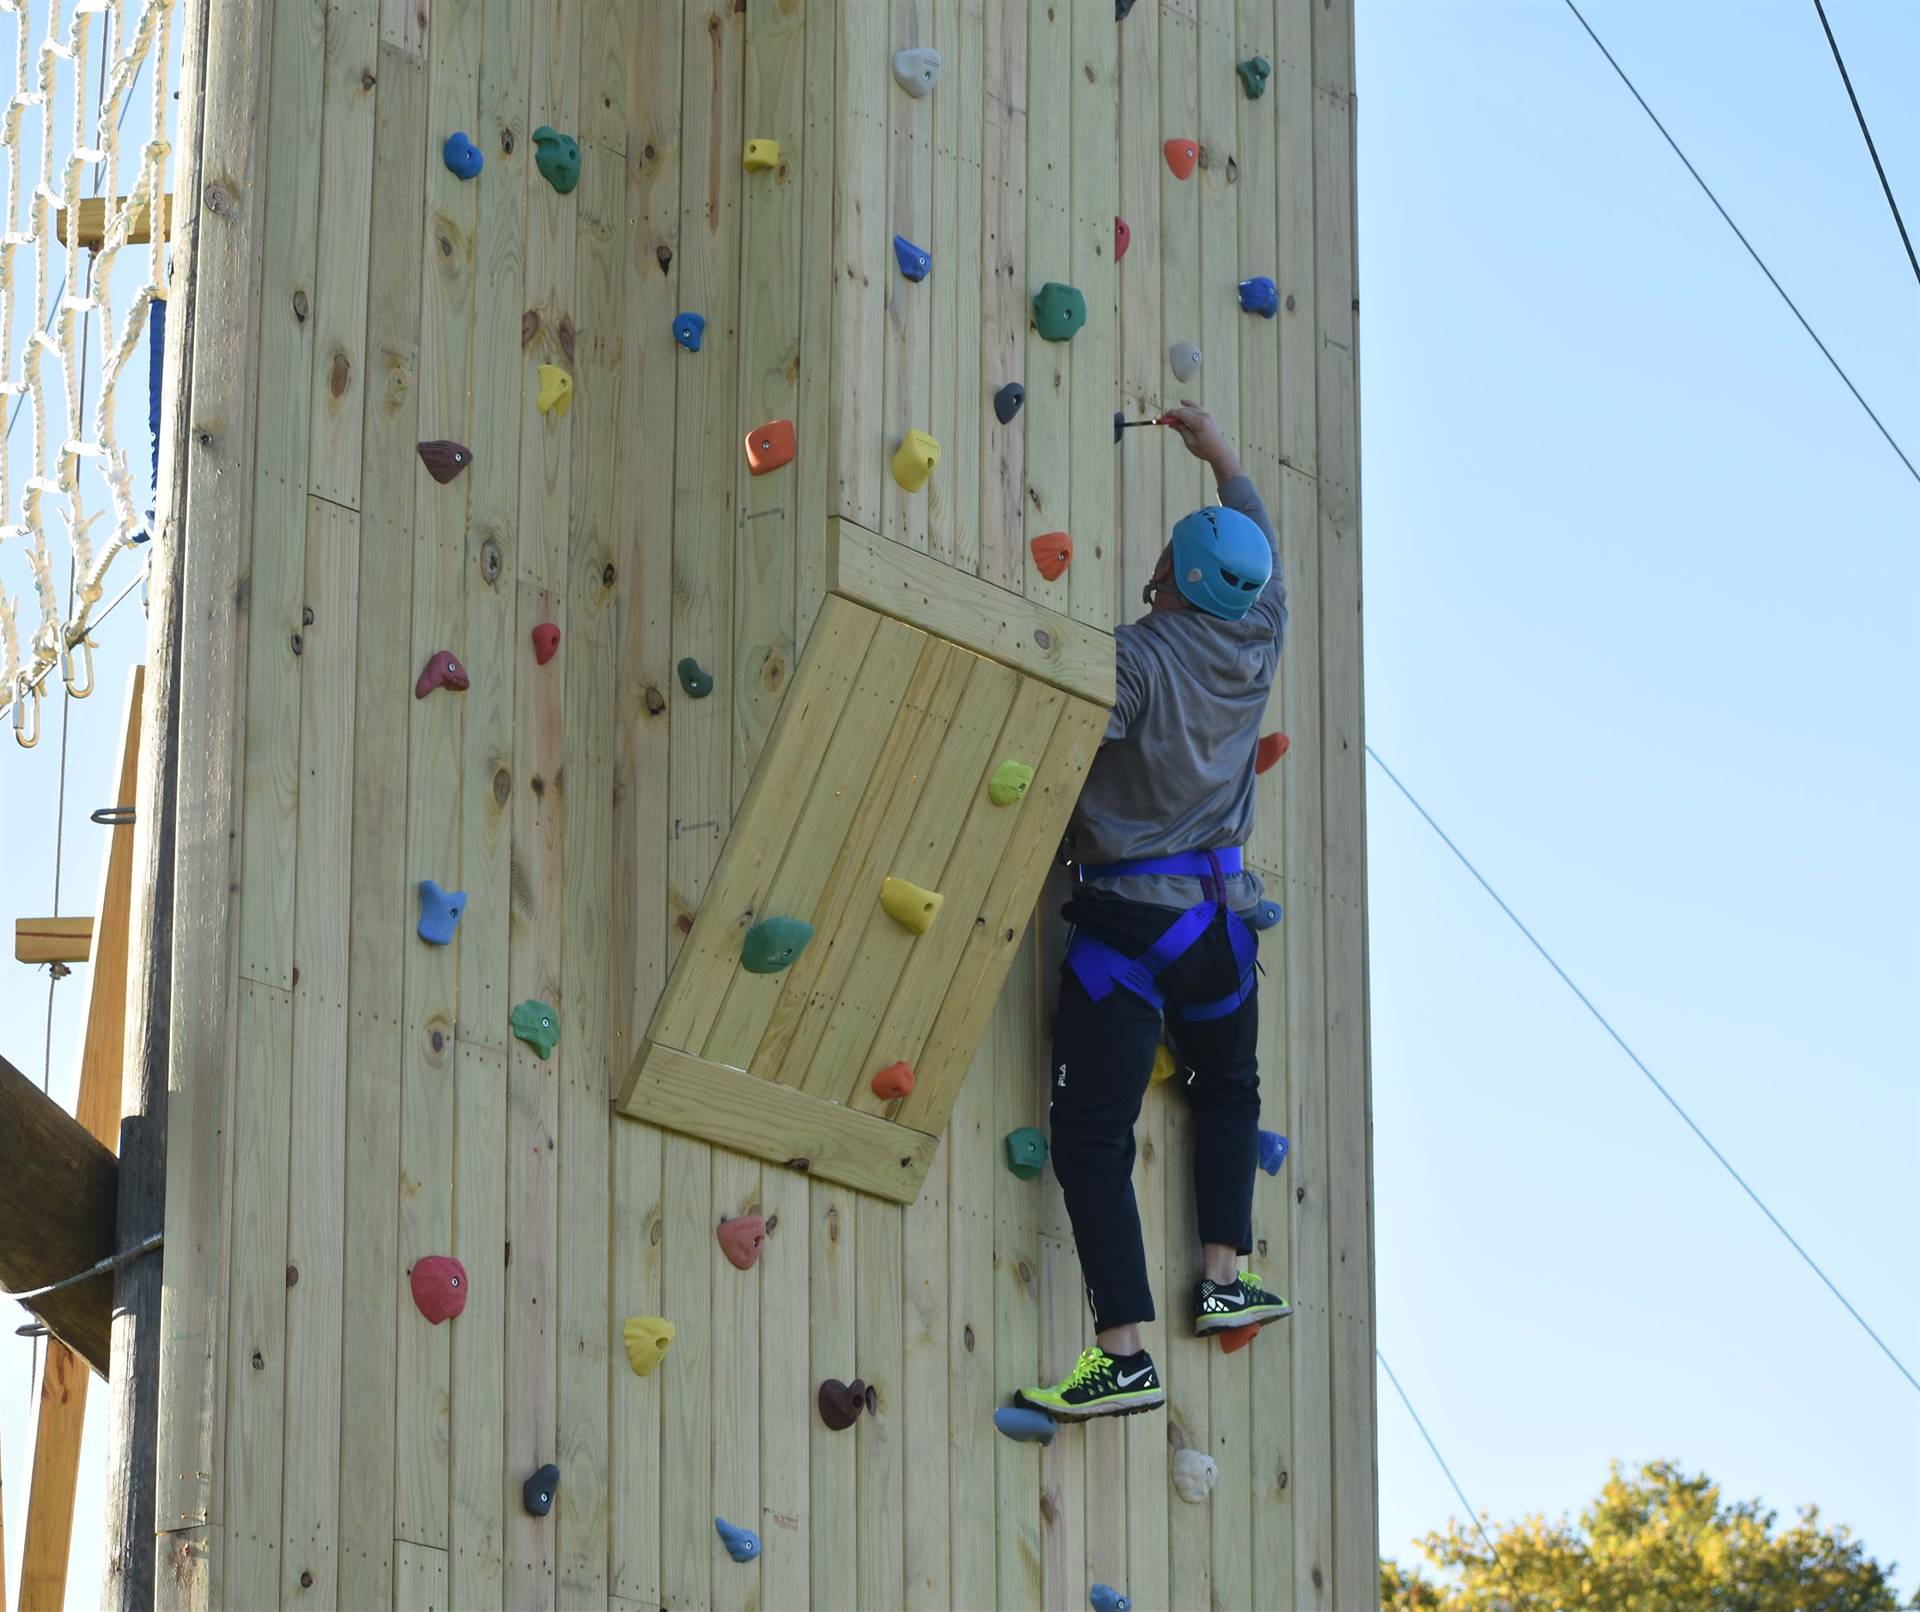 Training on the climbing wall